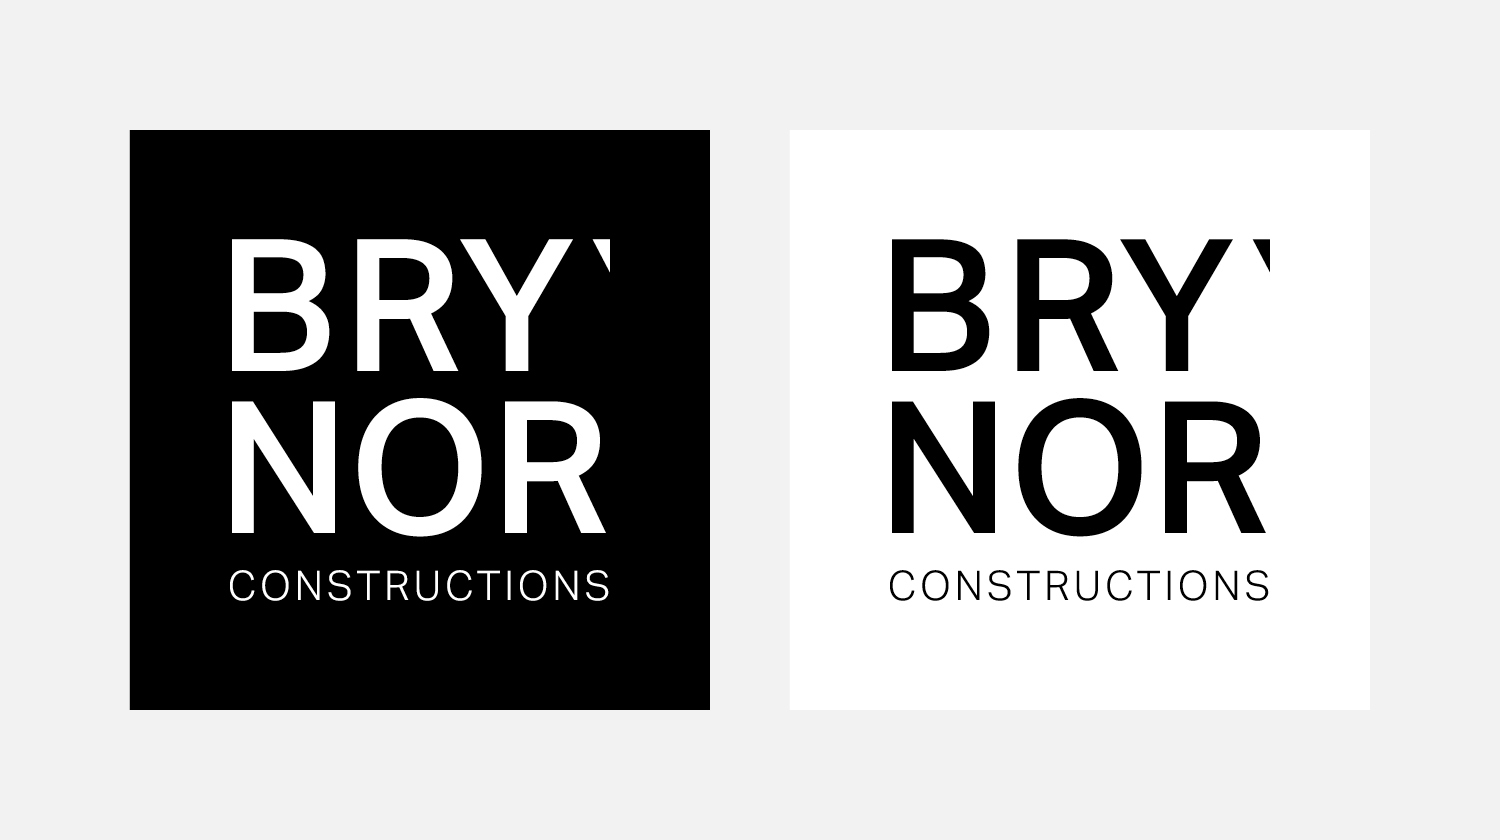 Gray+Design+Brynor+Constructions+website-1.jpgGray+Design+Brynor+Constructions+website-1.jpg